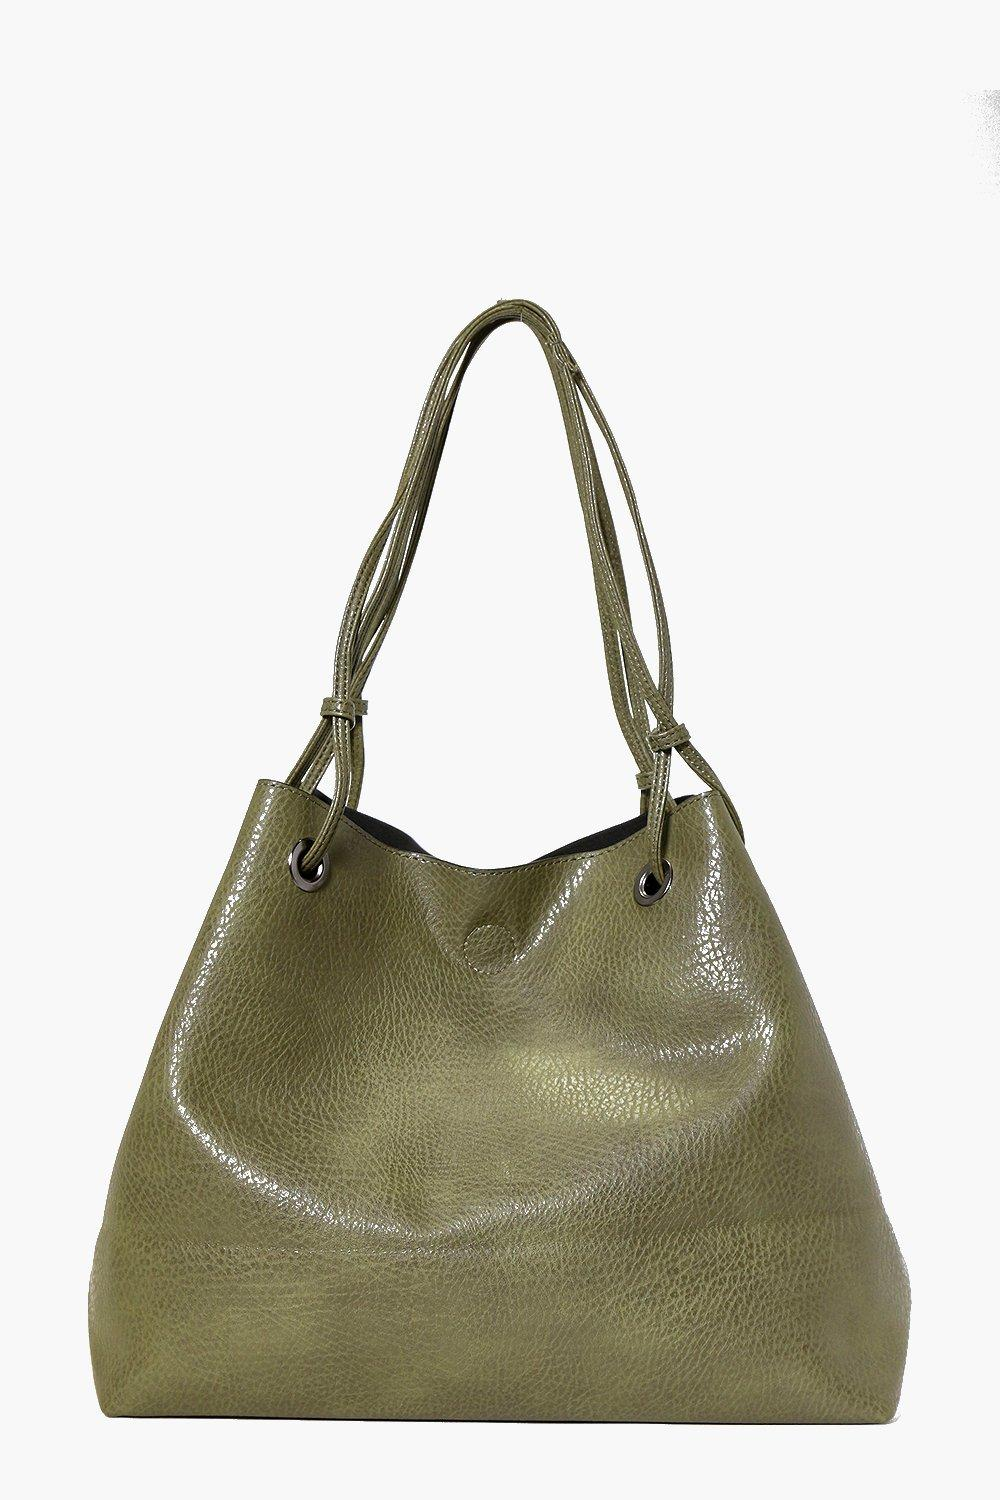 Eyelet Detail Shopper Day Bag khaki